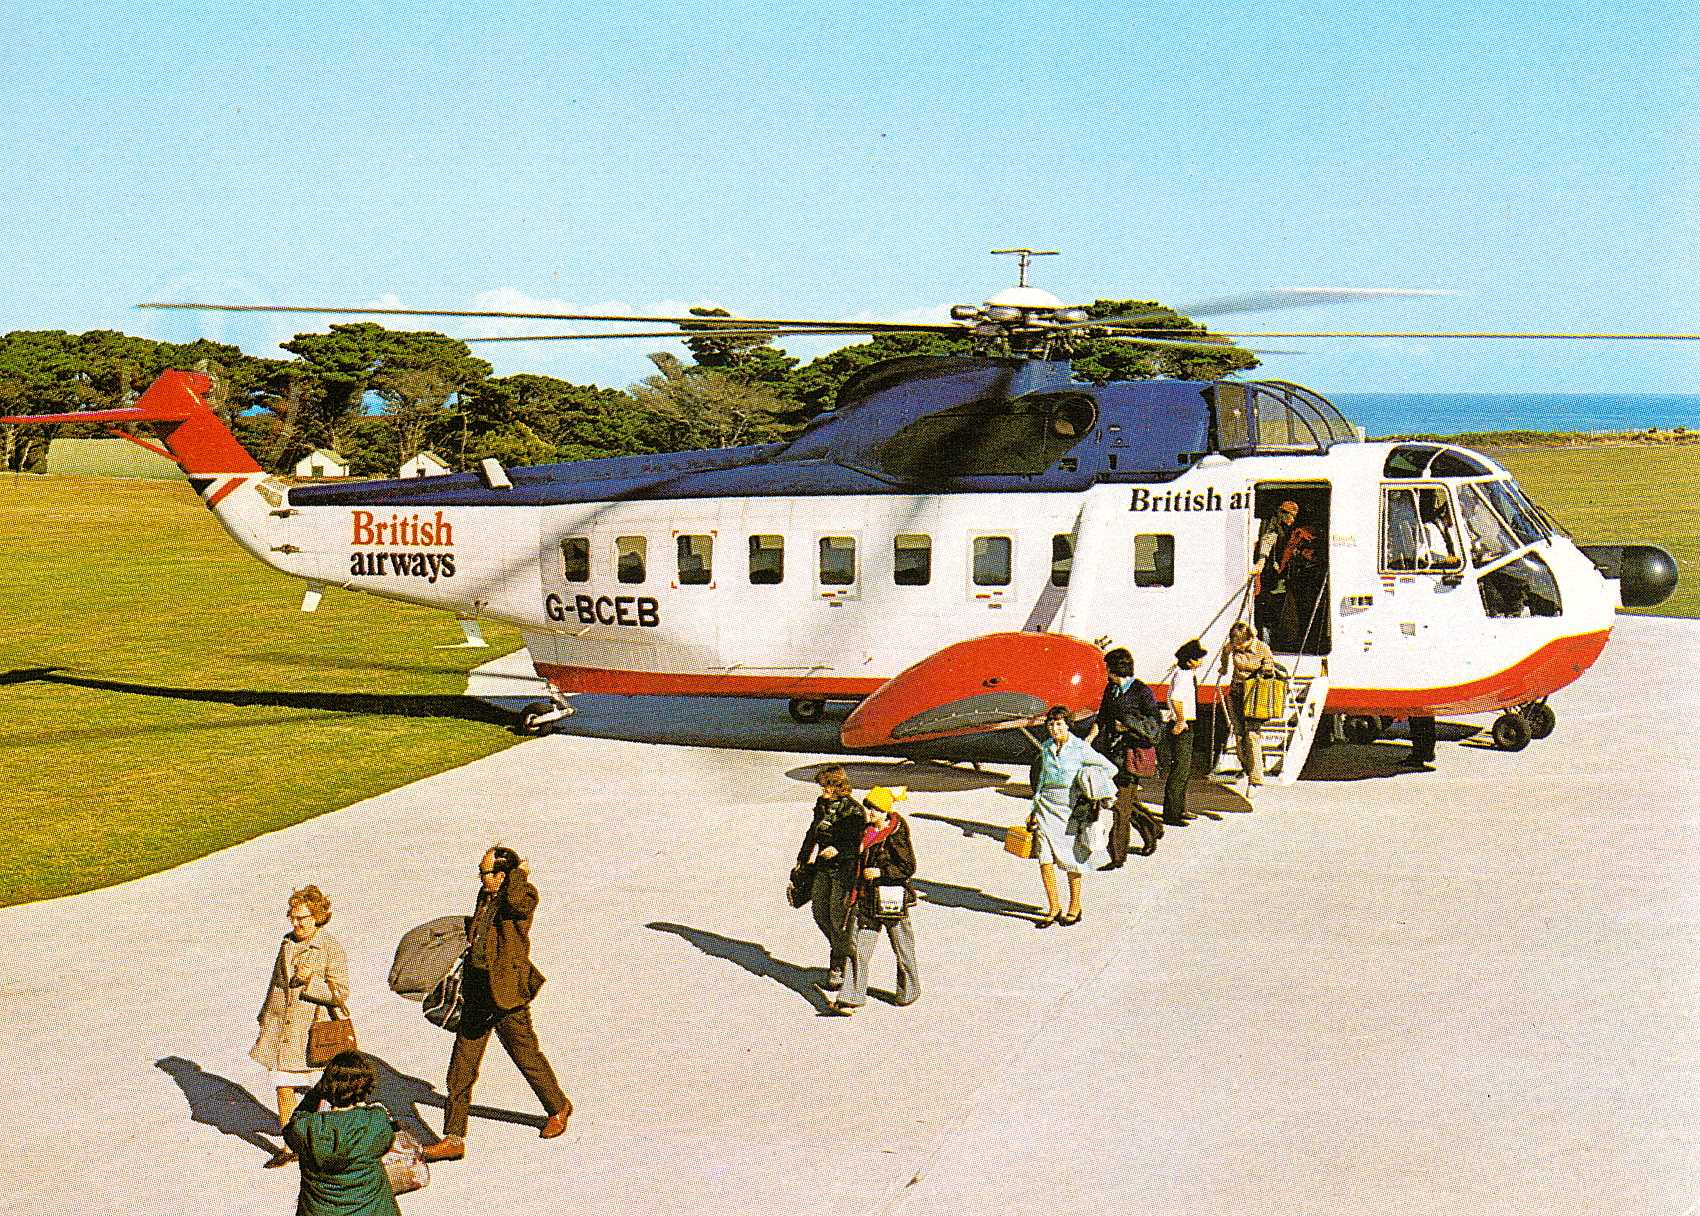 British Airways Helicopters  PenzanceIsles Of Scilly 19751978  A Collecti